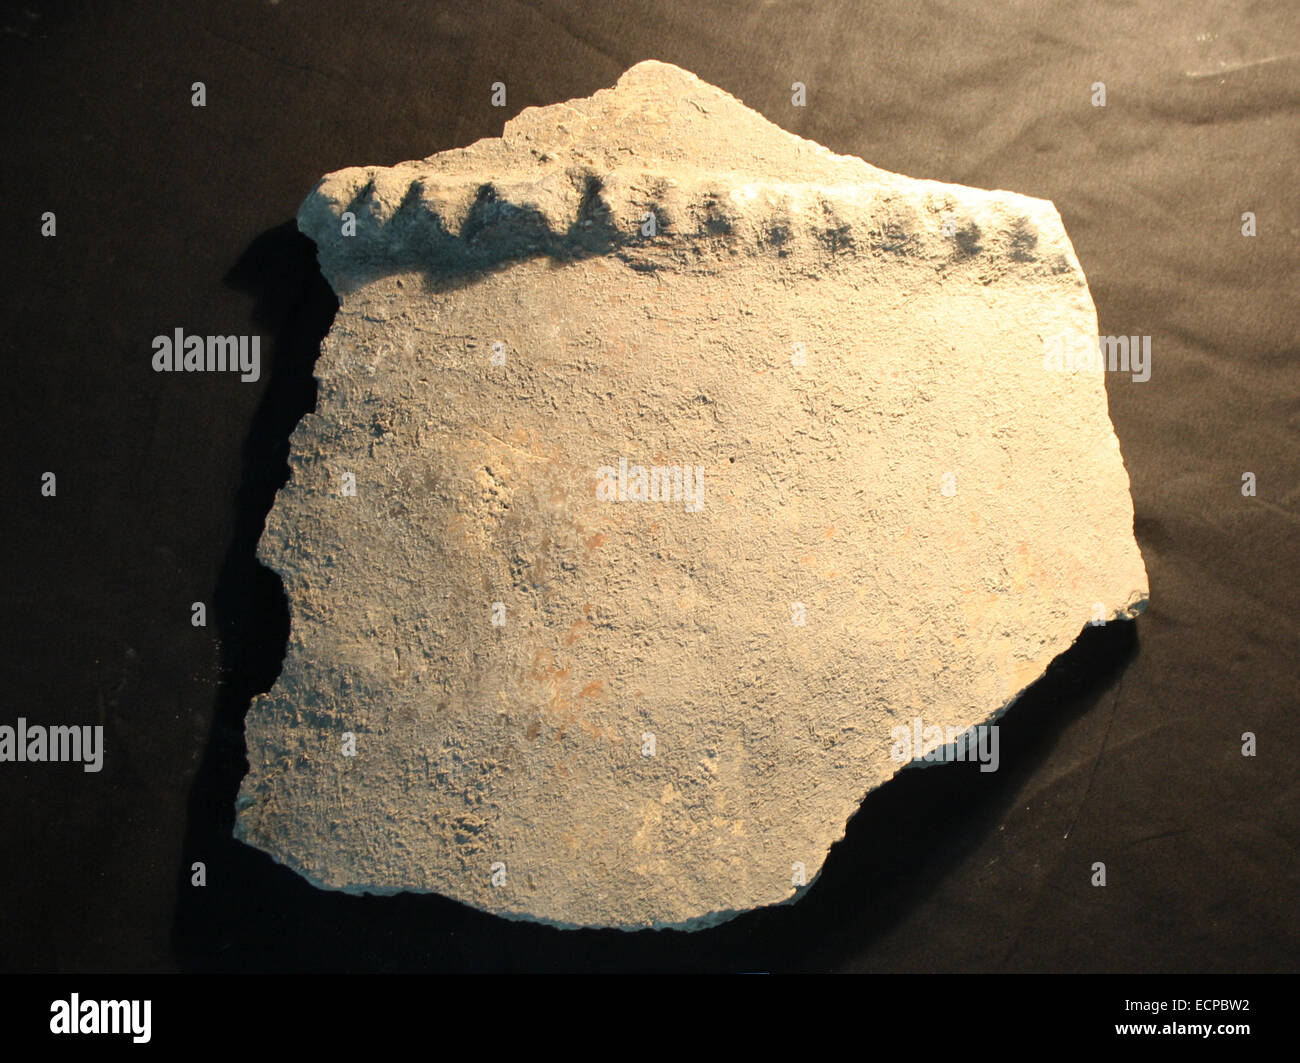 (141217) -- JERUSALEM, Dec. 17, 2014 (Xinhua) -- Handout photo released by Israel's Antiquities Authority on Dec. Stock Photo